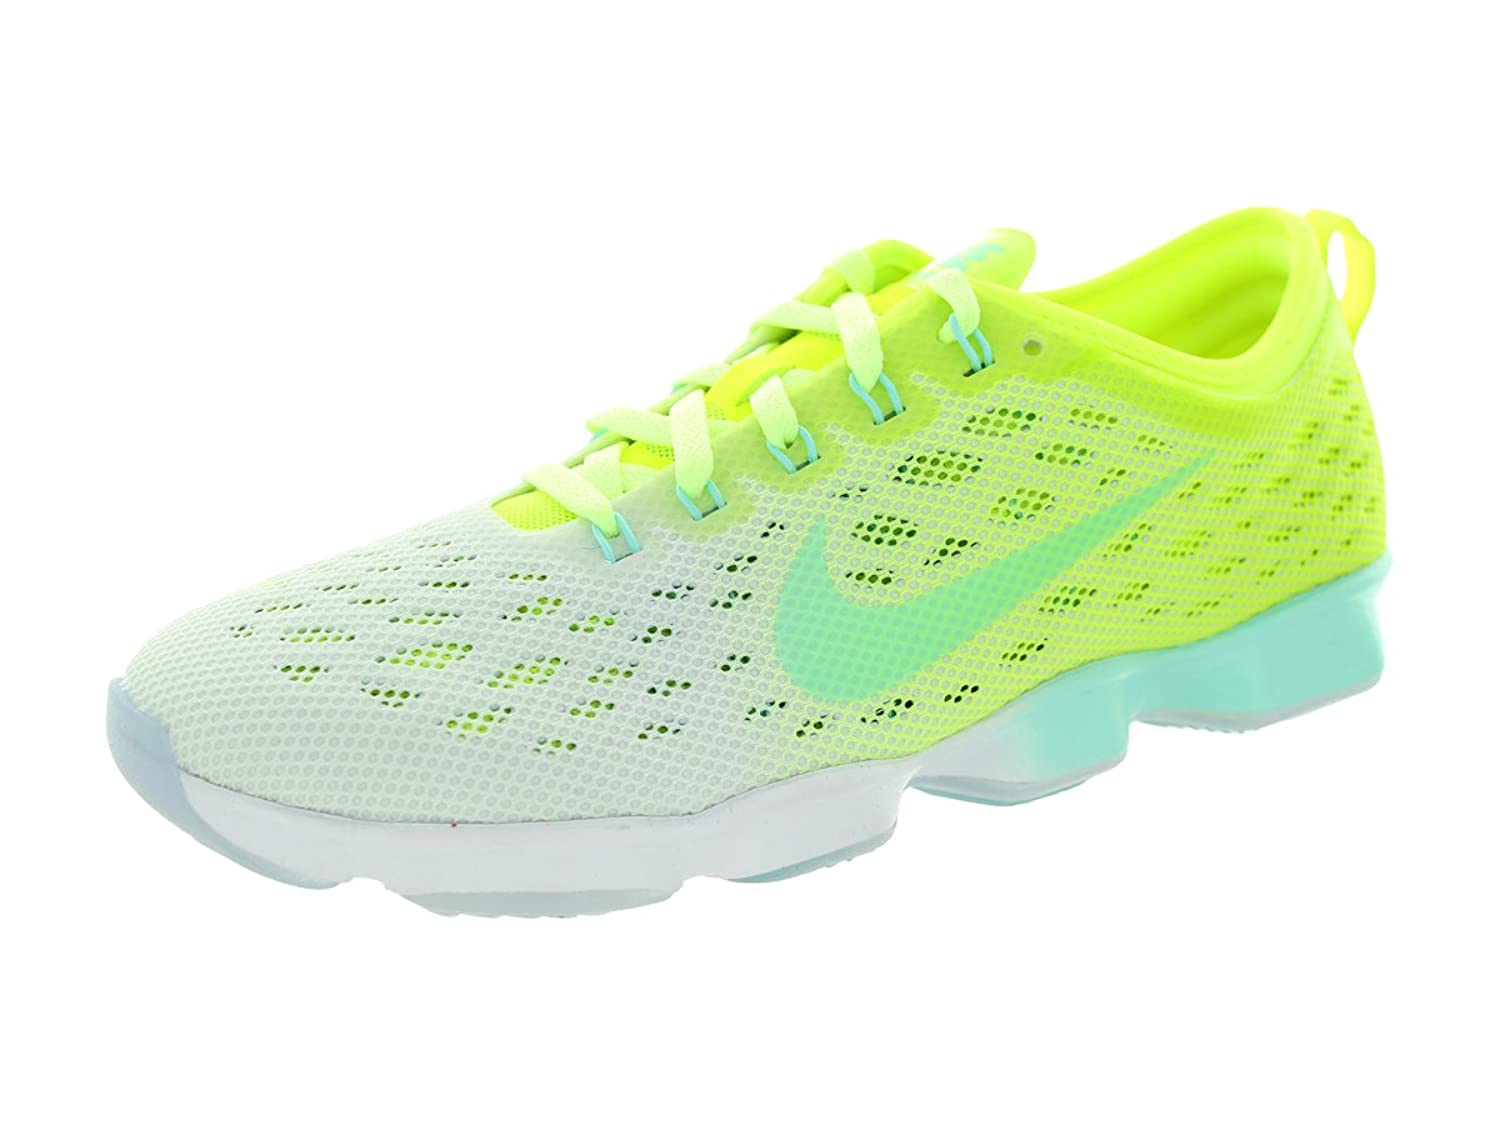 on sale 54ea6 6a205 Amazon.com   Nike Women s Zoom Fit Agility W Ankle-High Synthetic Running  Shoe   Road Running